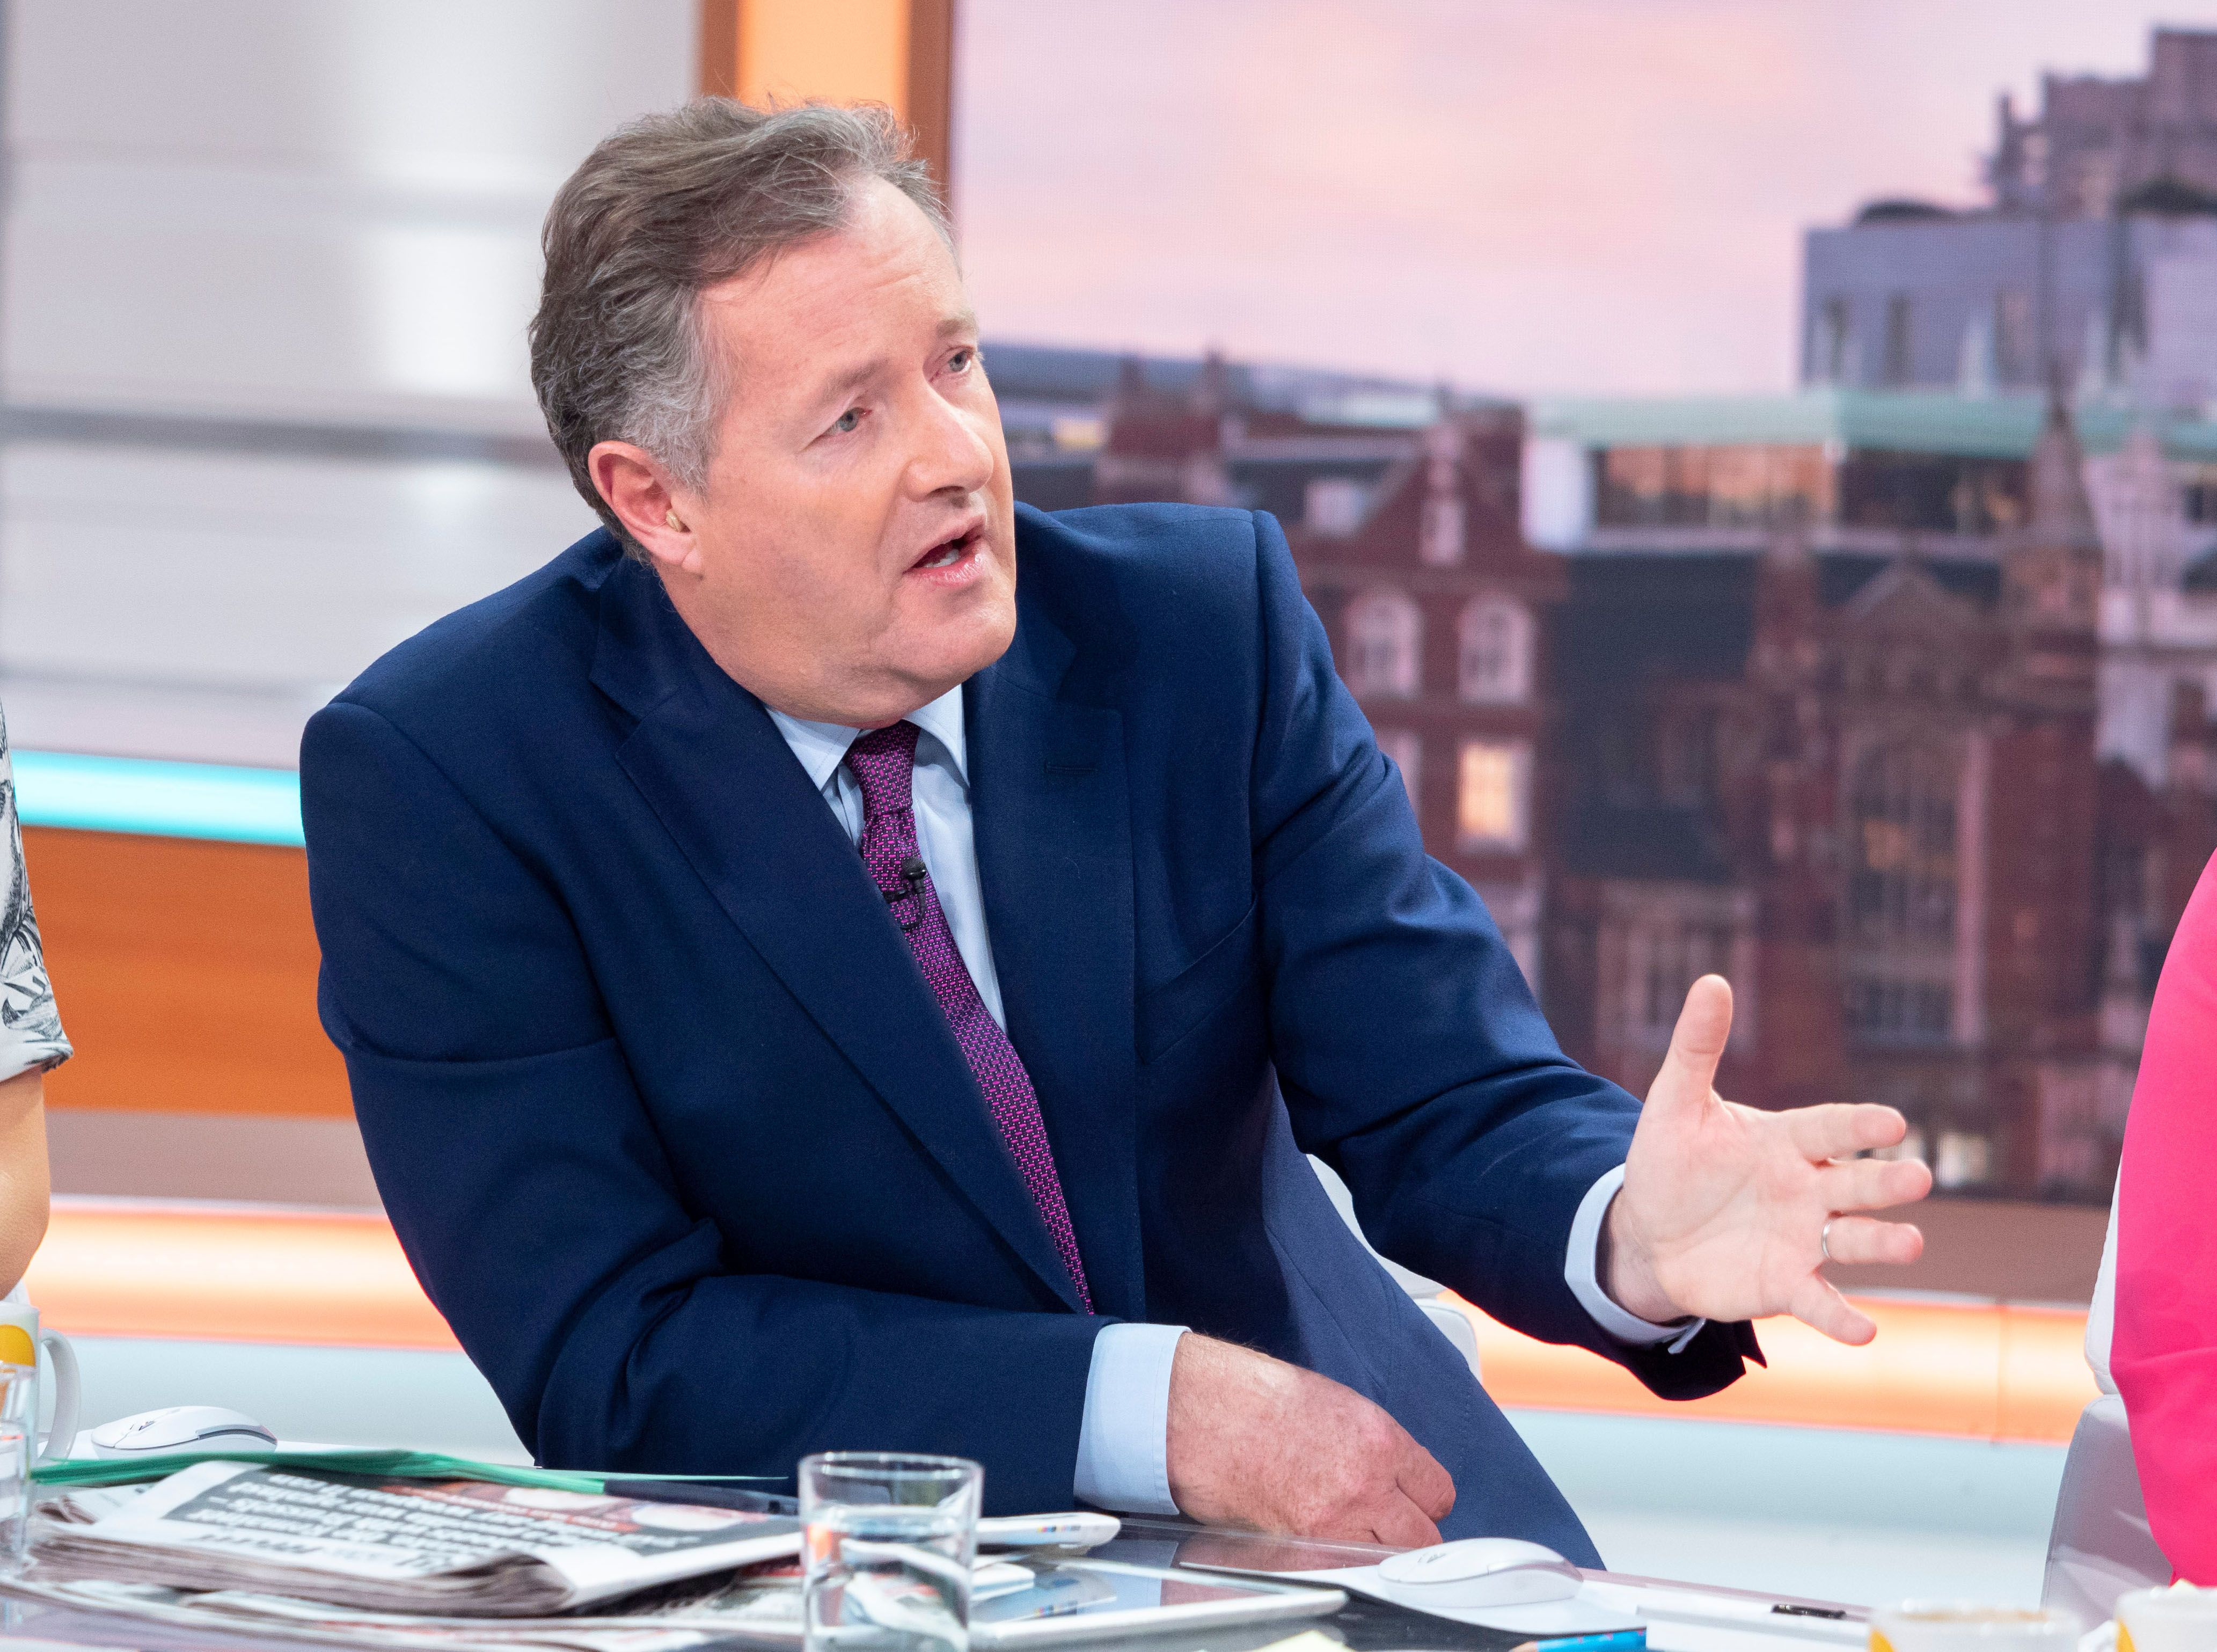 Piers Morgan agrees to go on I'm a Celebrity... Get Me Out of Here on one condition